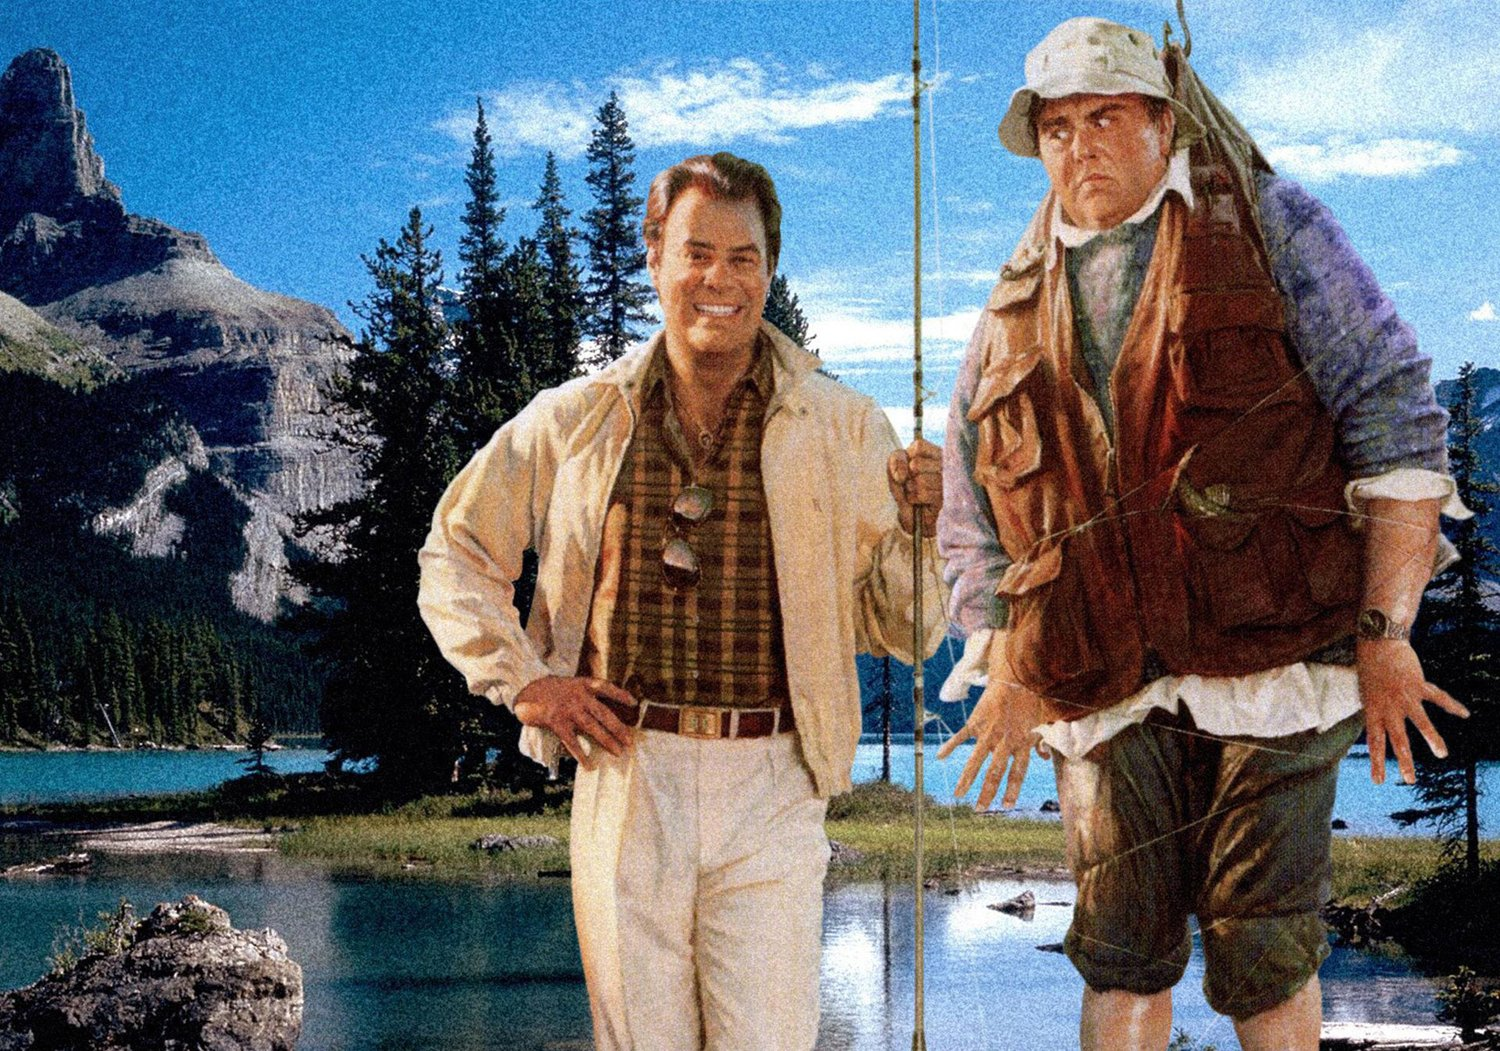 Summer of '88: The Great Outdoors